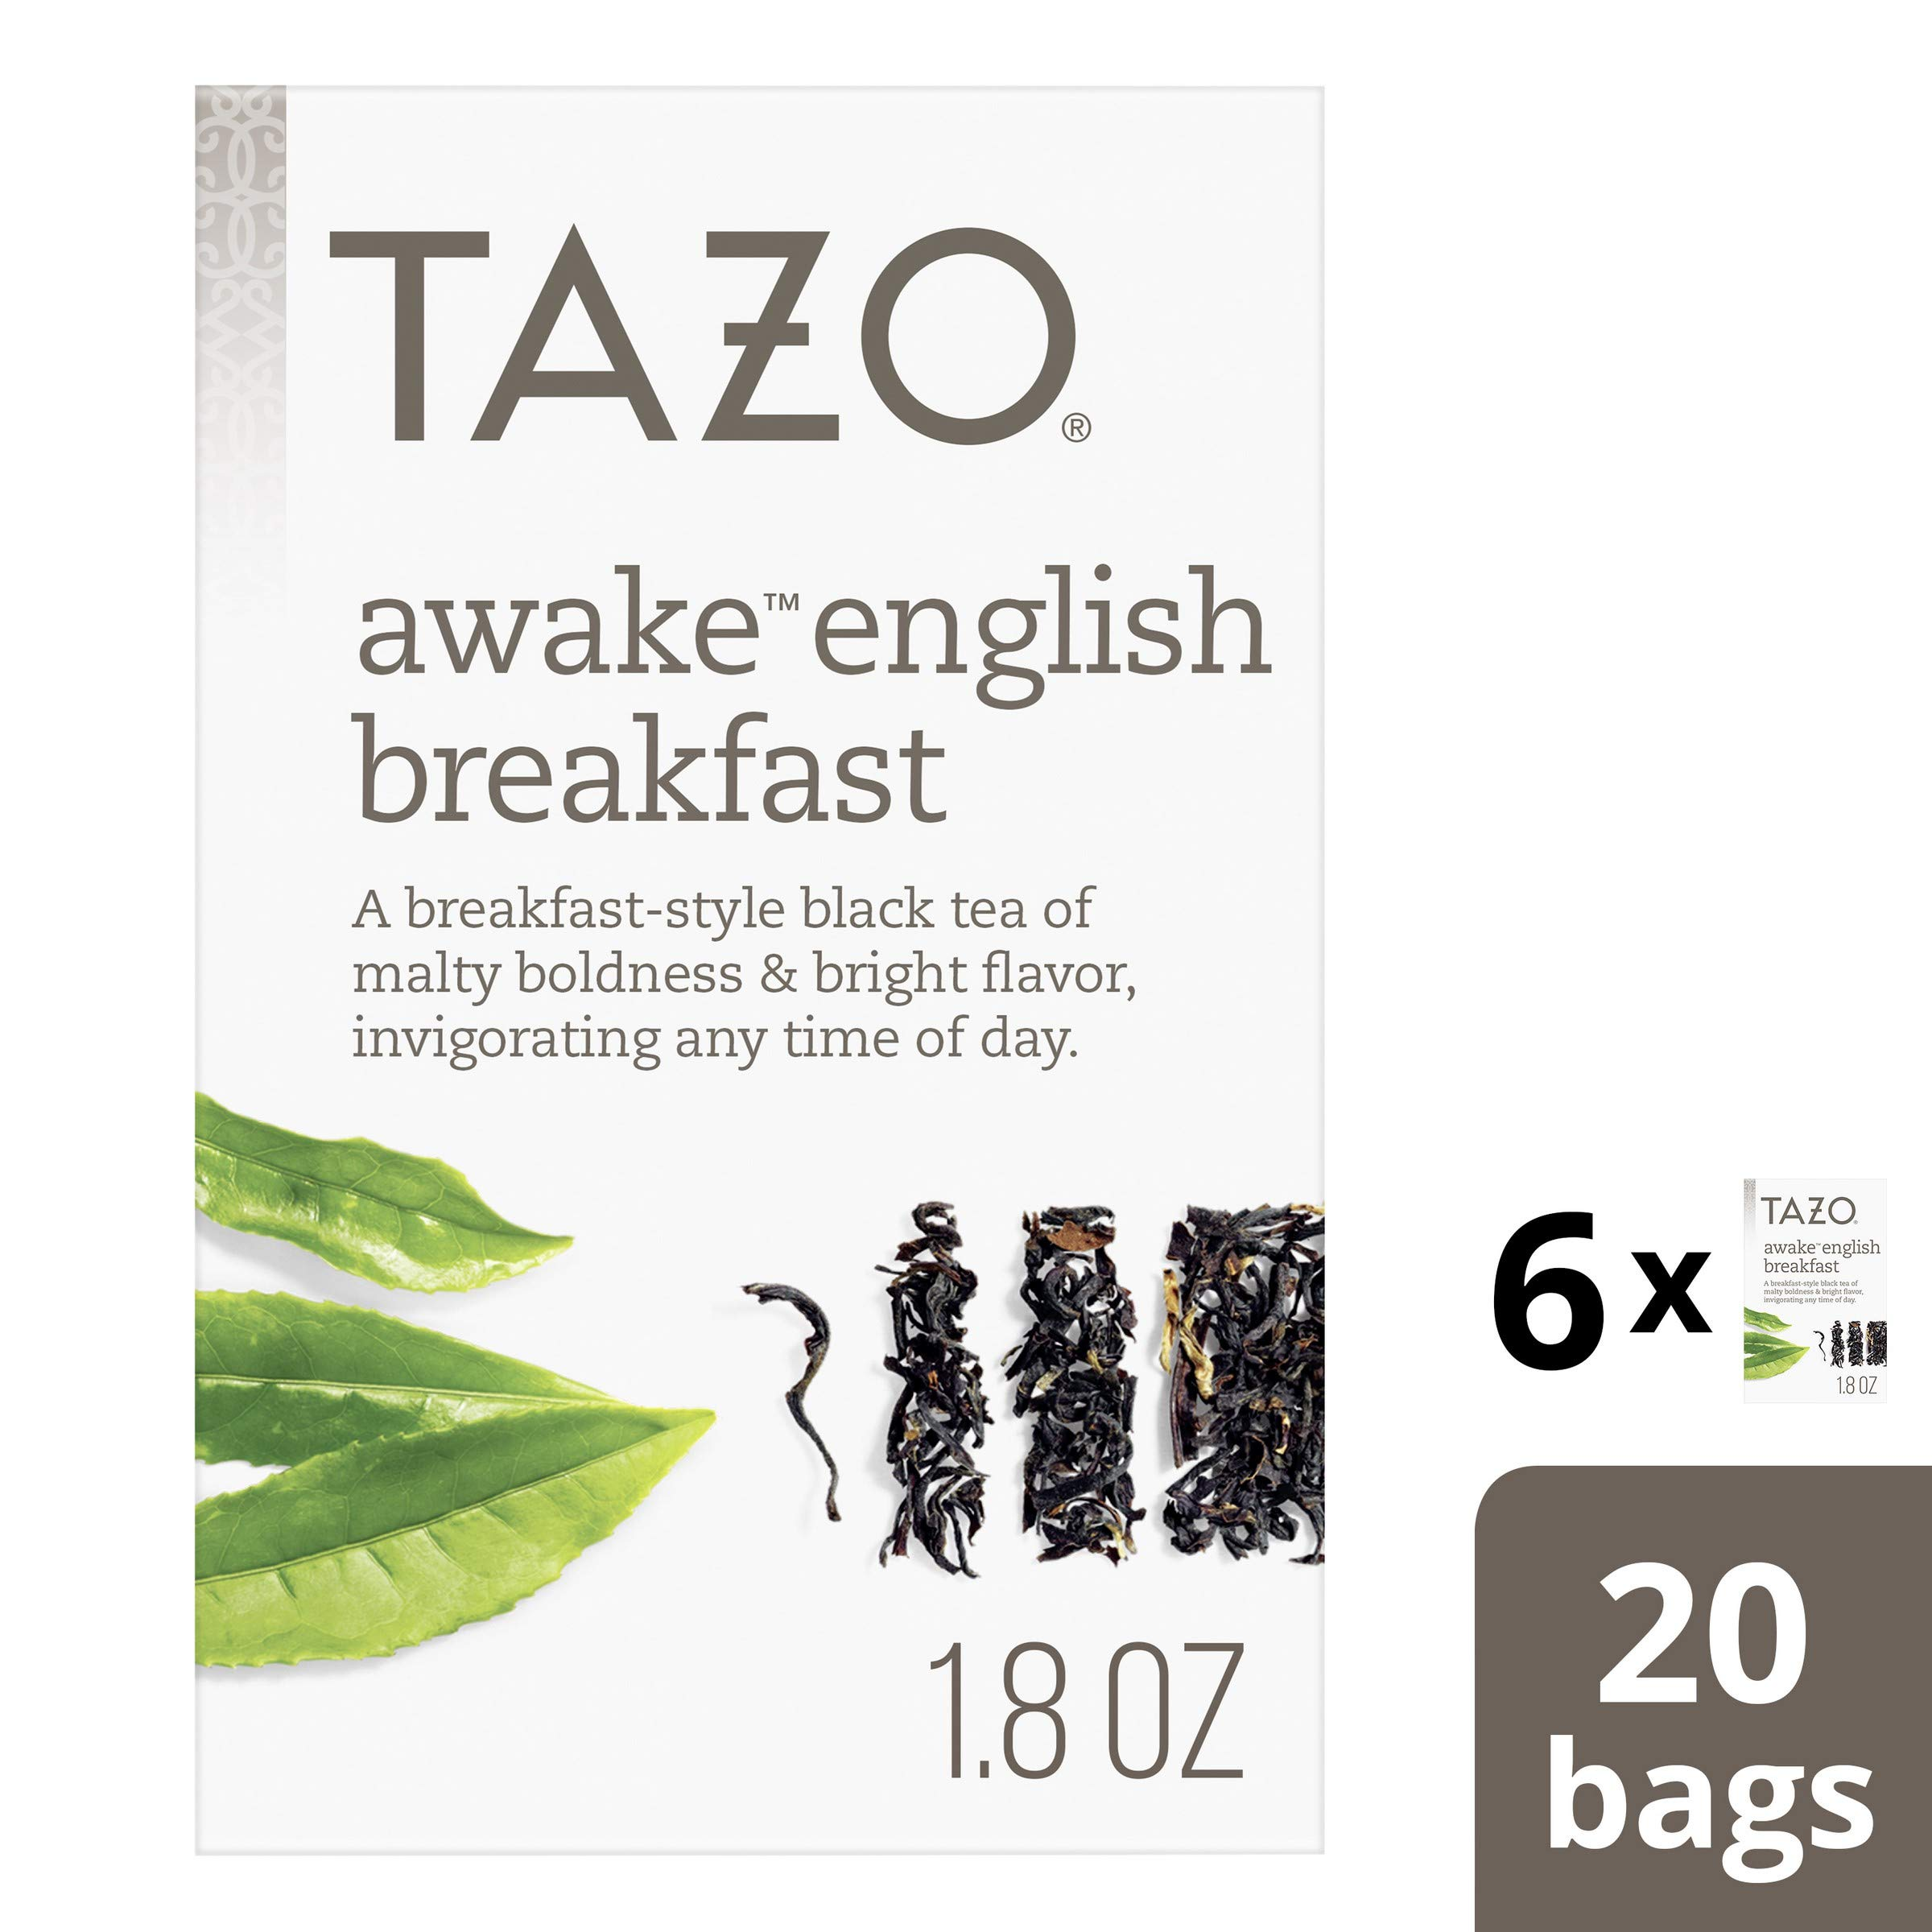 Tazo Awake English Breakfast Tea Bags for a bold and delightful traditional breakfast-style black tea Black Tea high caffeine level 20 count, Pack of 6 by Tazo